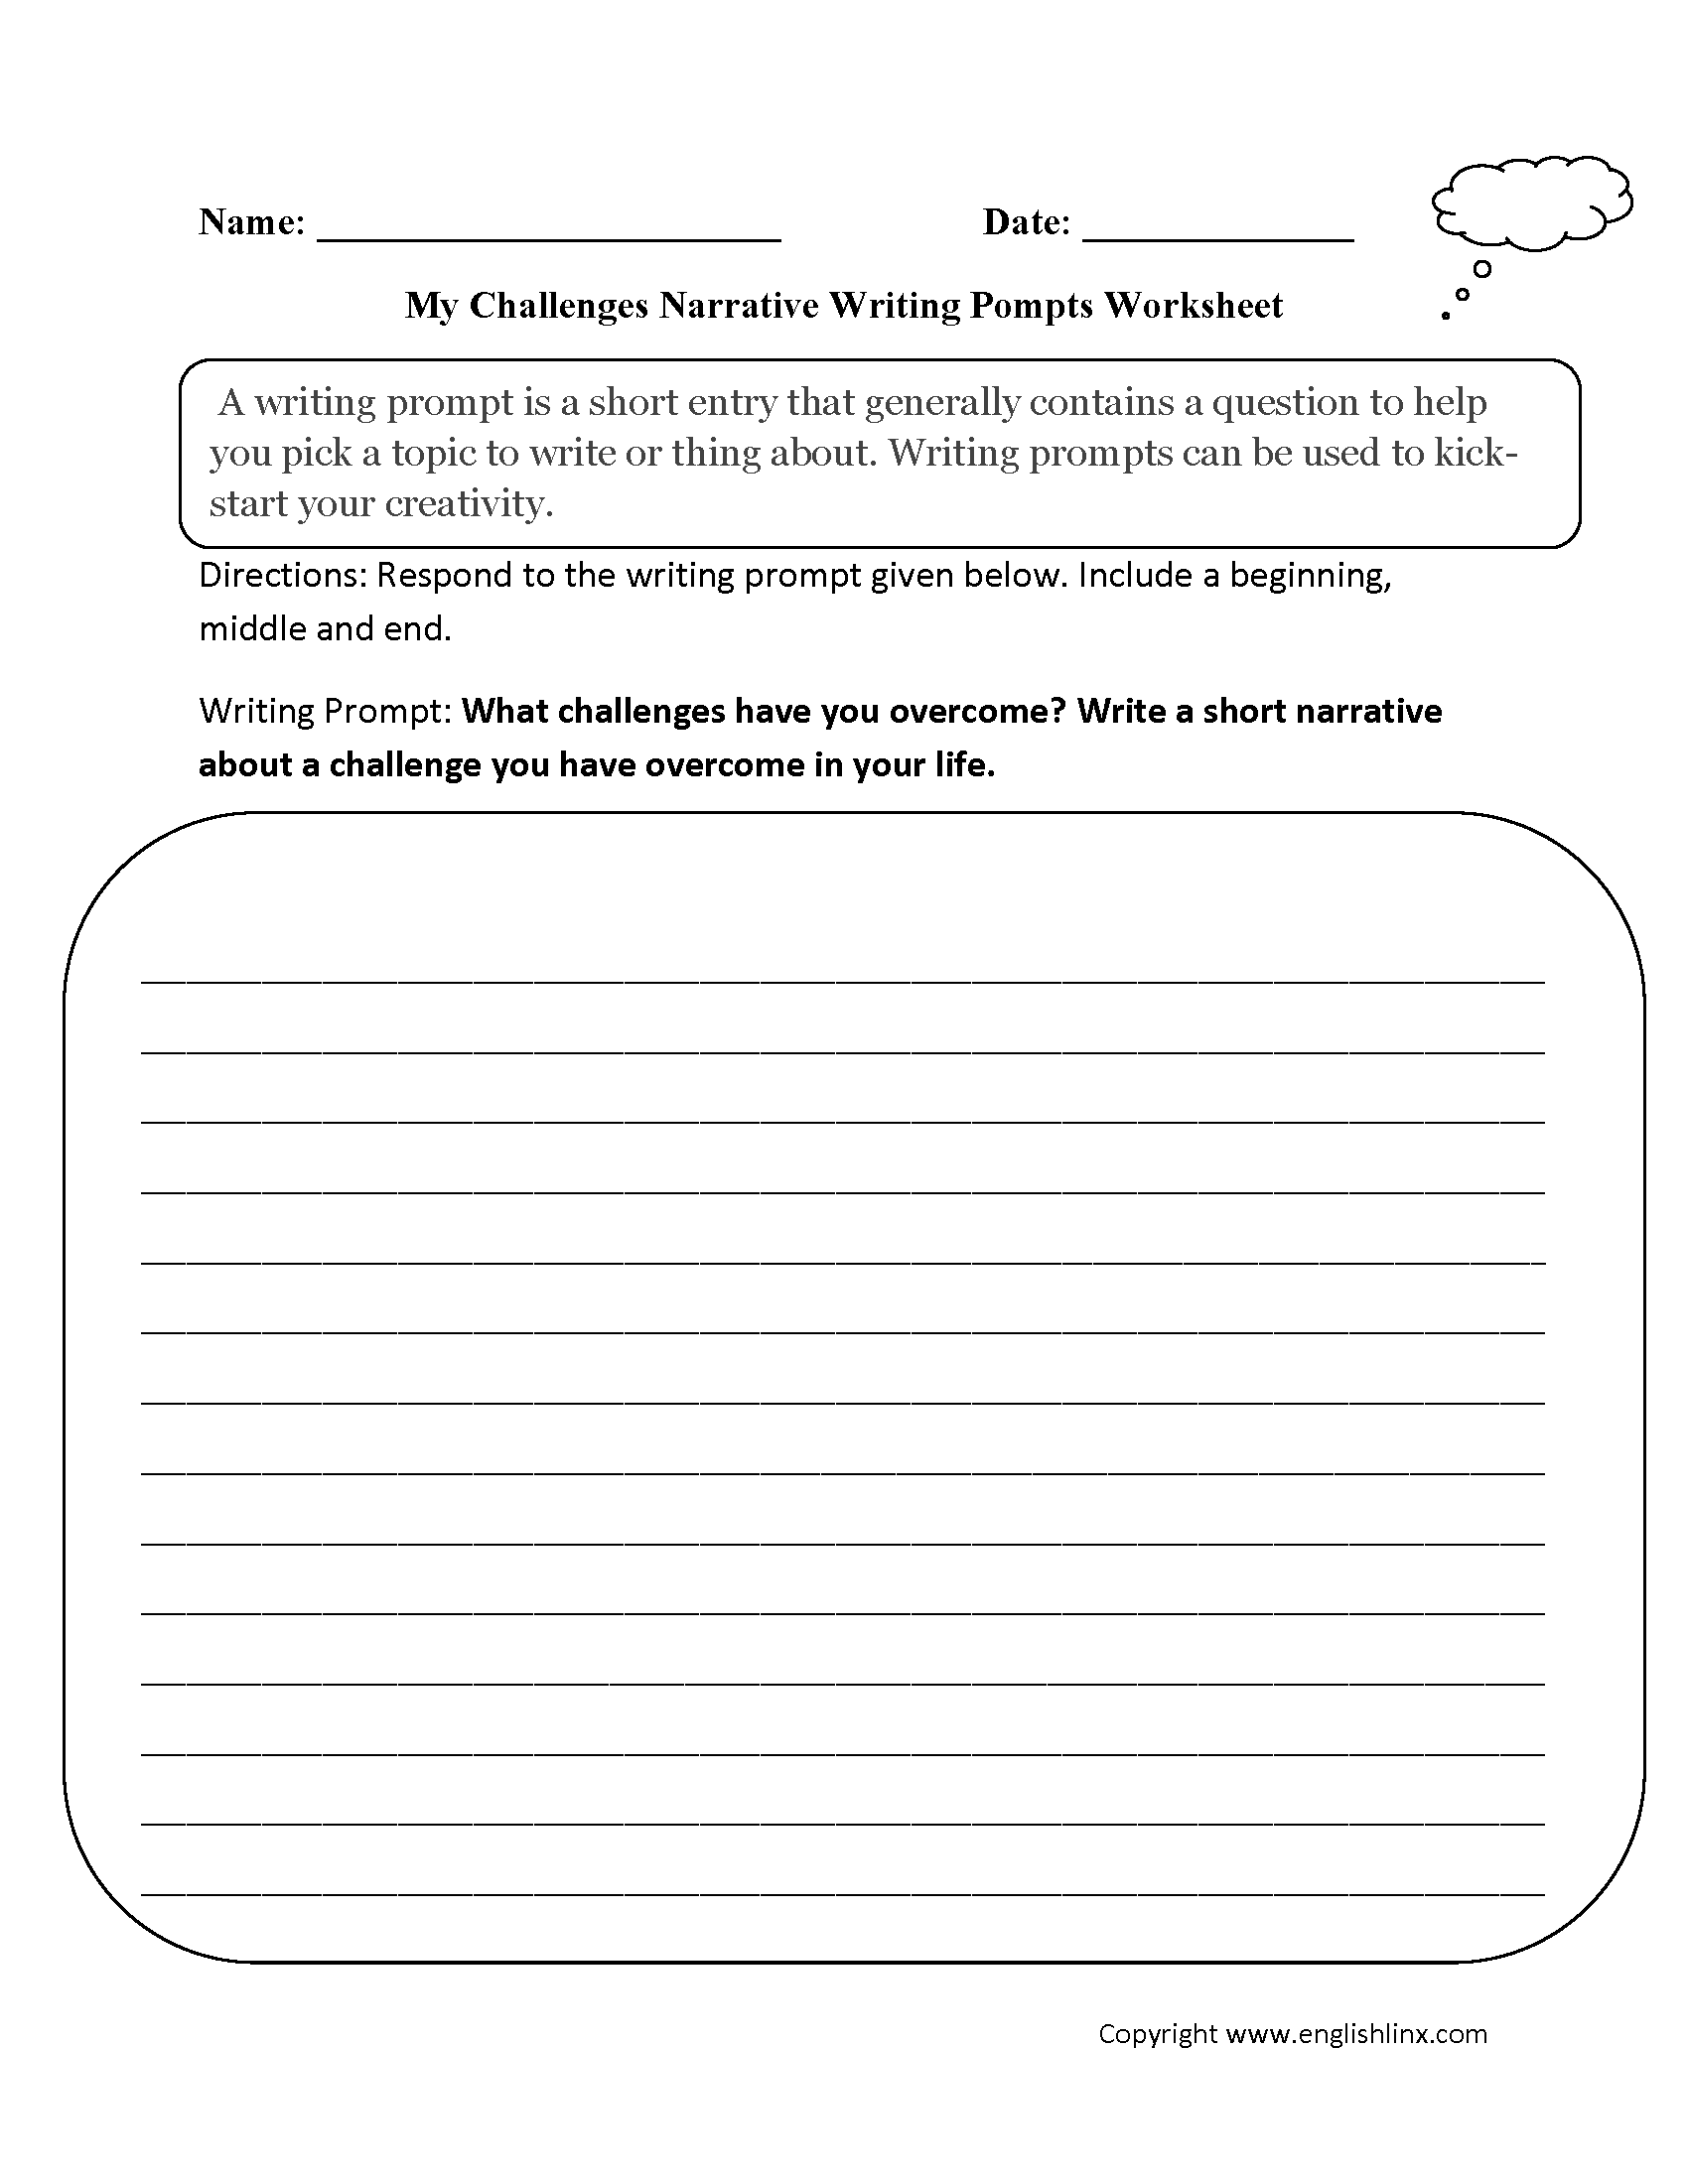 Challenges Narrative Writing Prompts Worksheets With